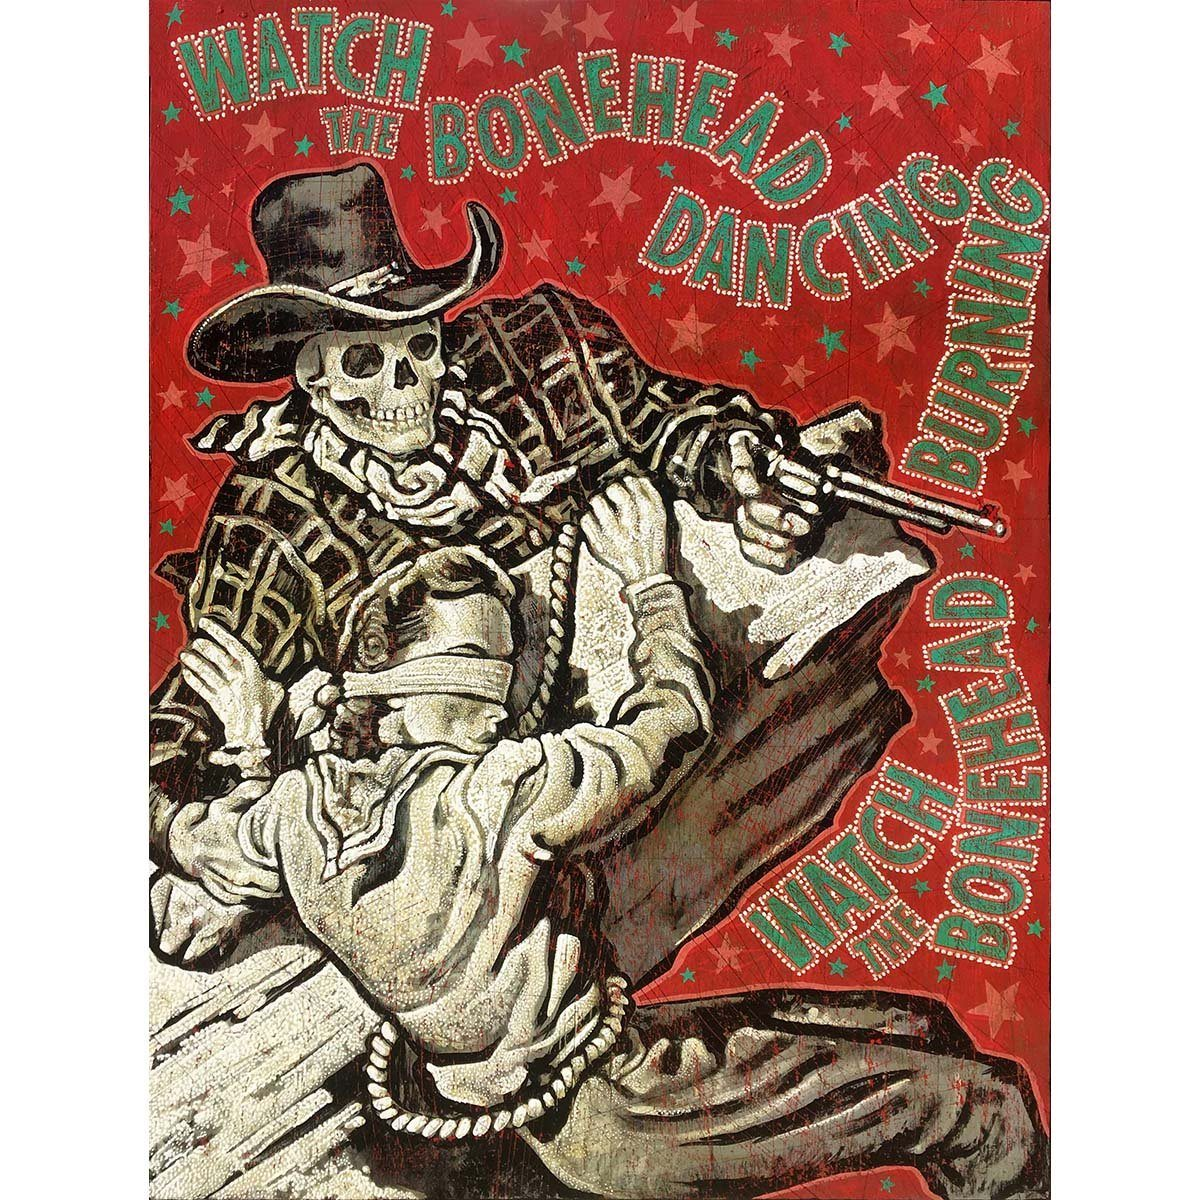 Bonehead Dancing - Jon Langford - Yard Dog Art